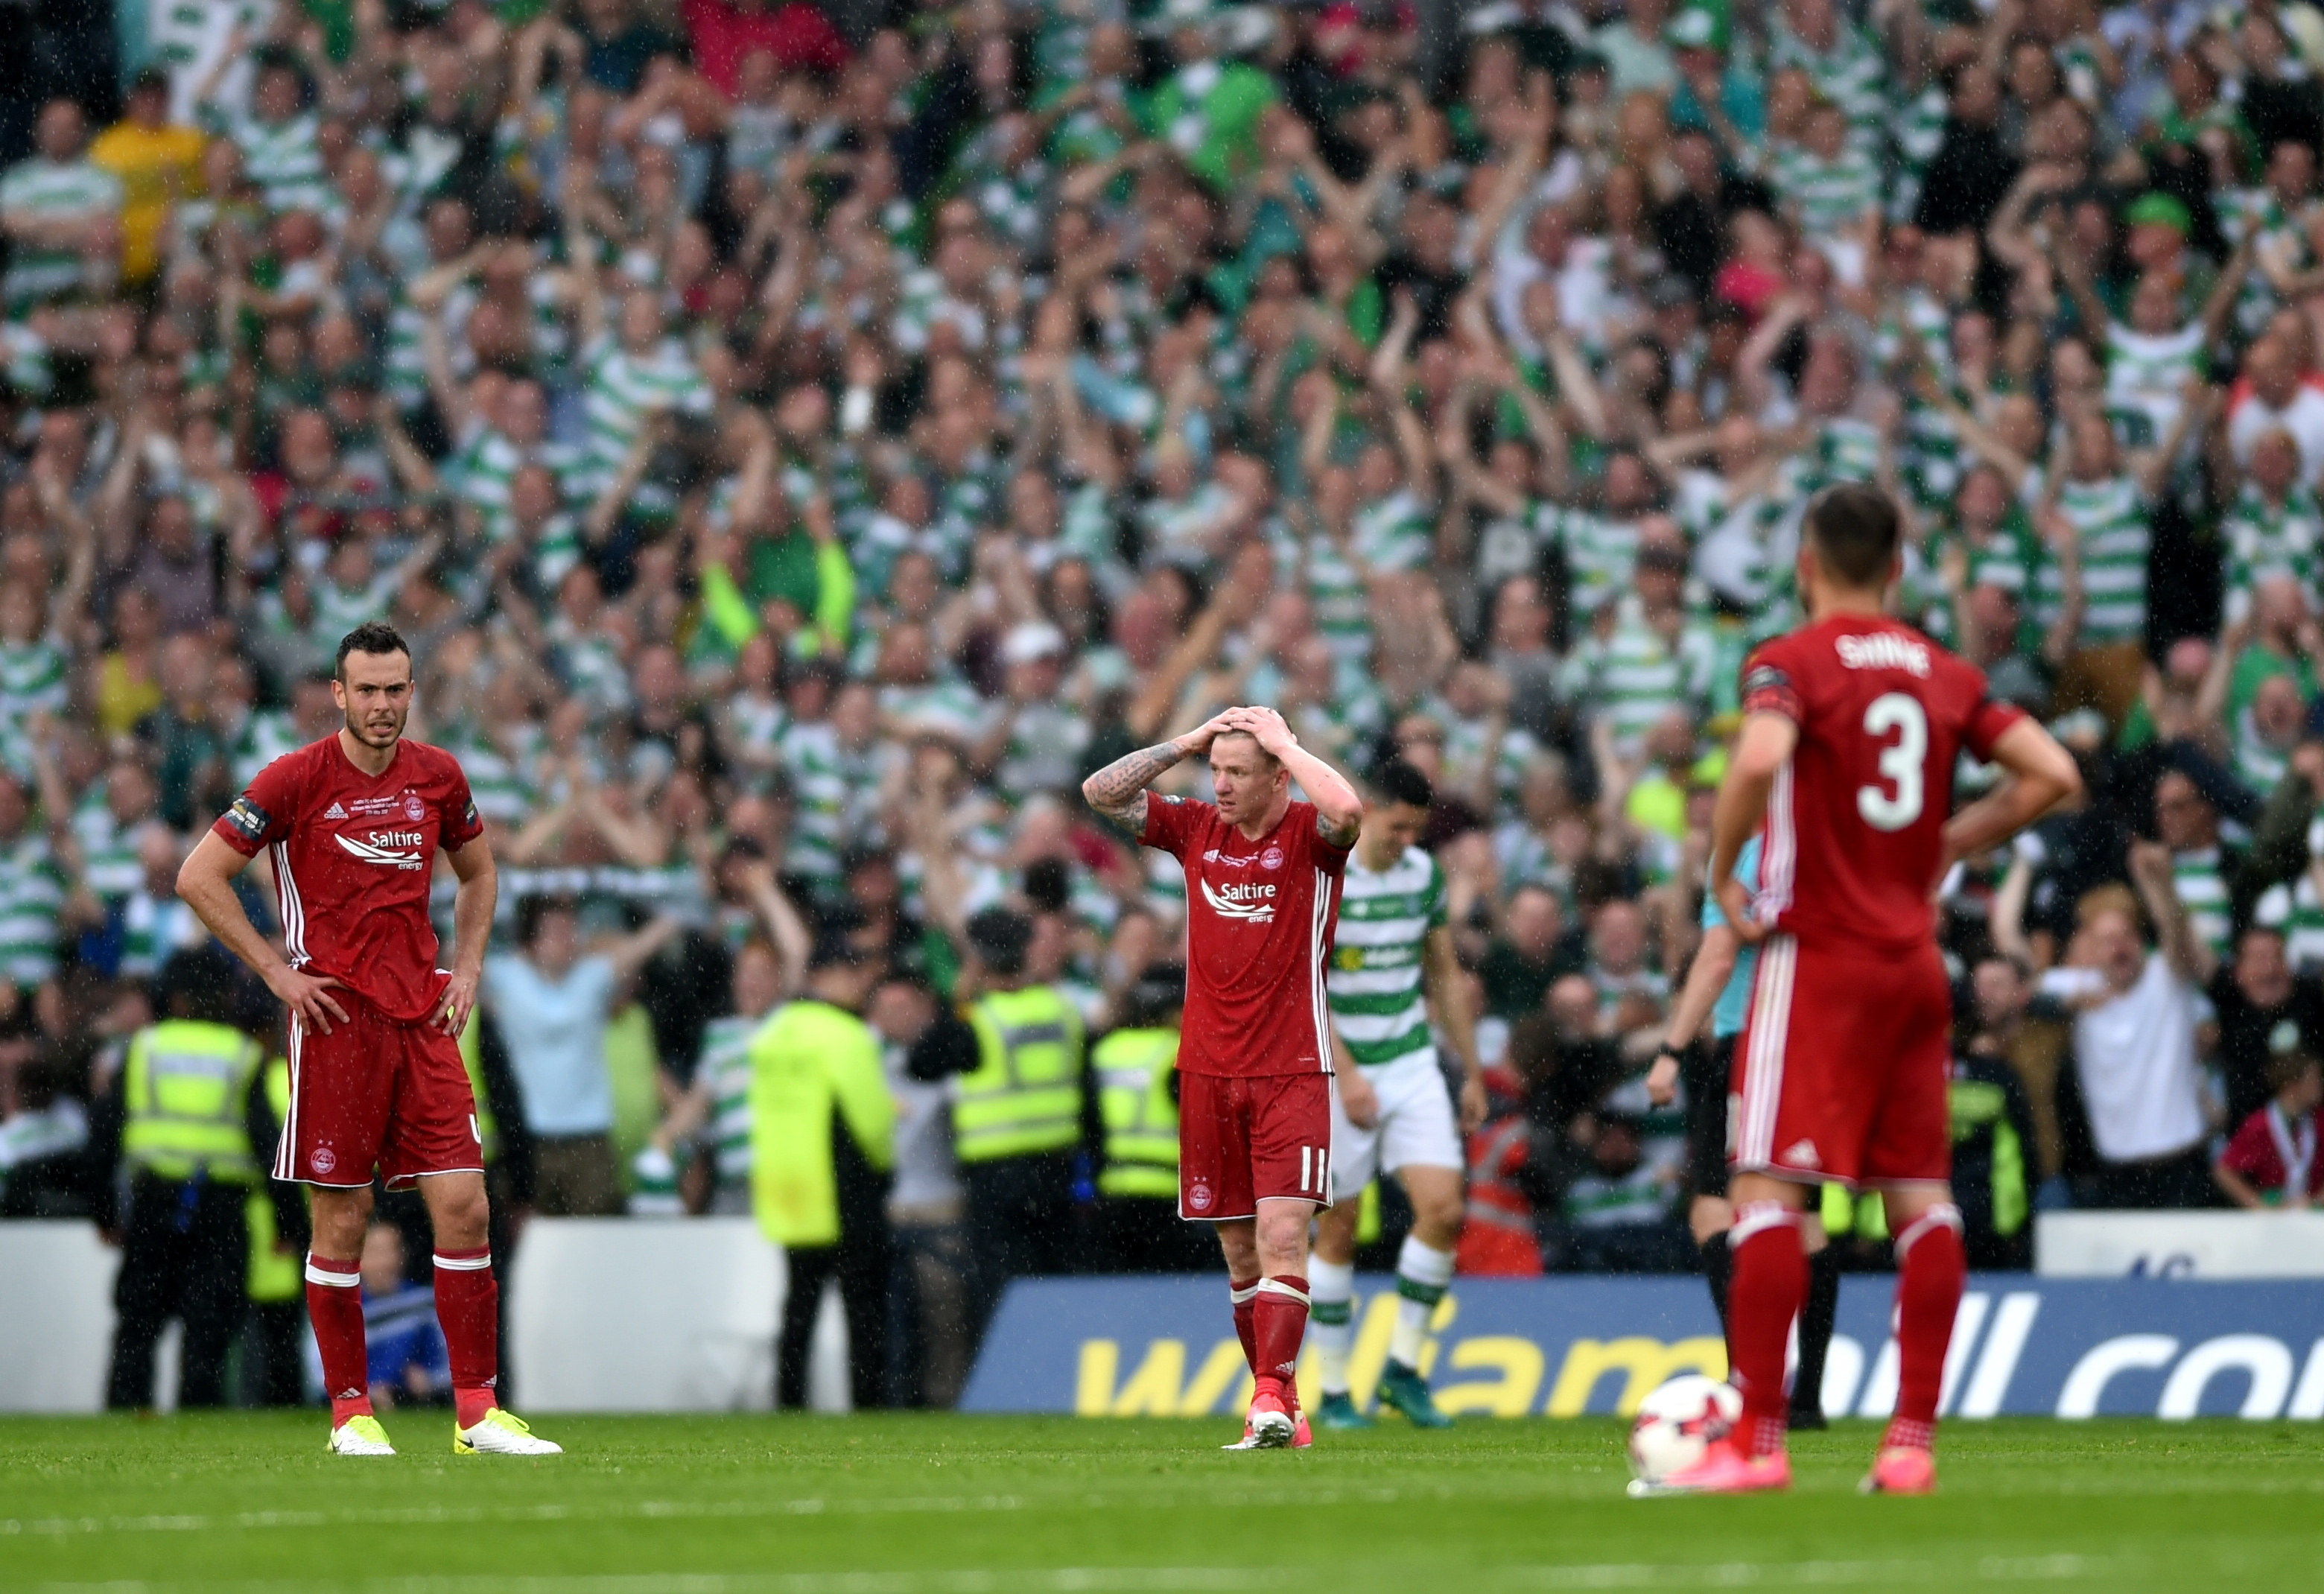 Aberdeen came close to winning the Scottish Cup under McInnes in 2017, losing 2-1 to Celtic at Hampden.